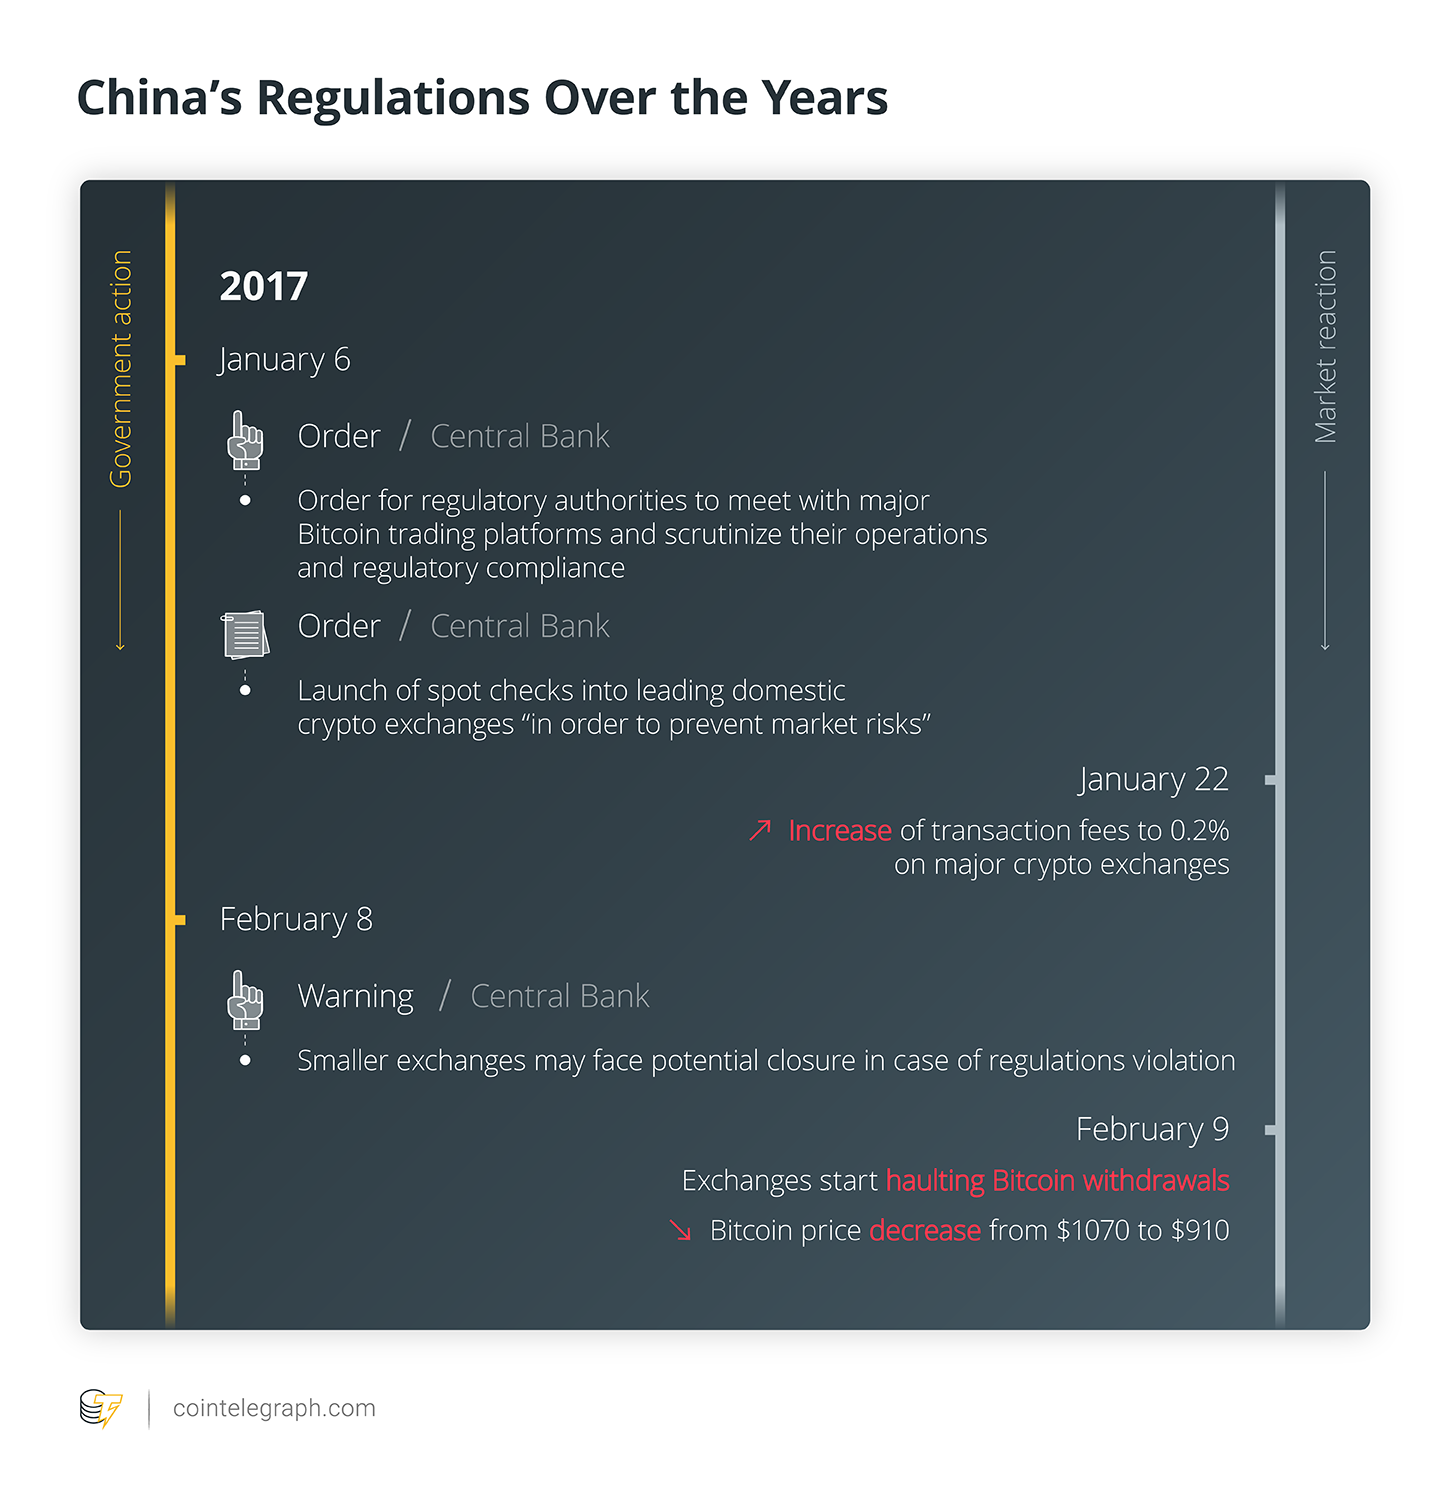 2017: PBoC exchange scrutiny